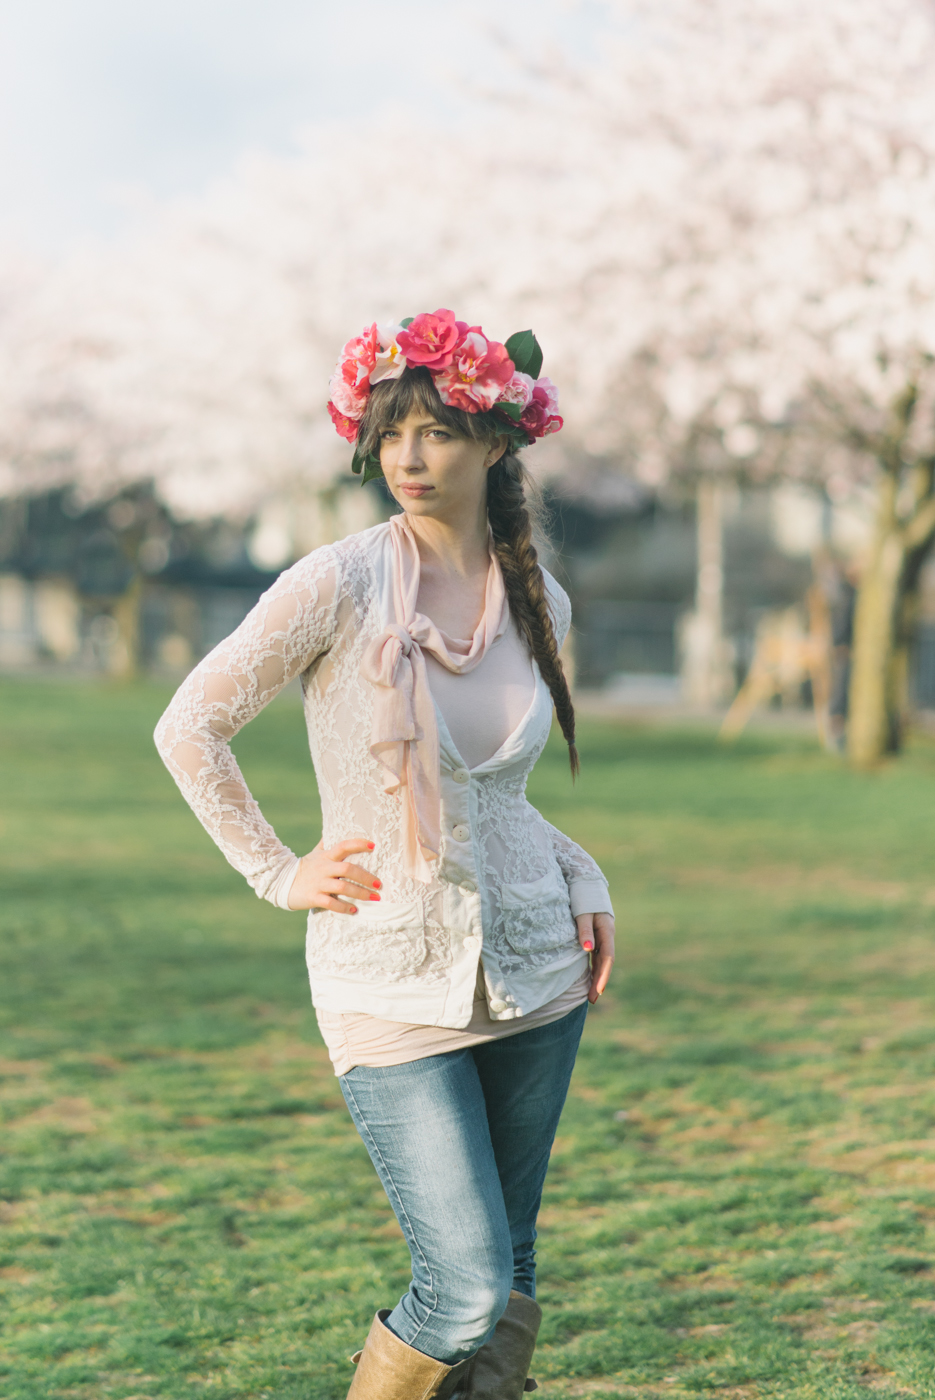 Portland-Oregon-Senior-Portrait-Photographer-Waterfront-pink-cherry-blossoms-Nature-Natural-Light-Shelley-Marie-Photography-1.jpg